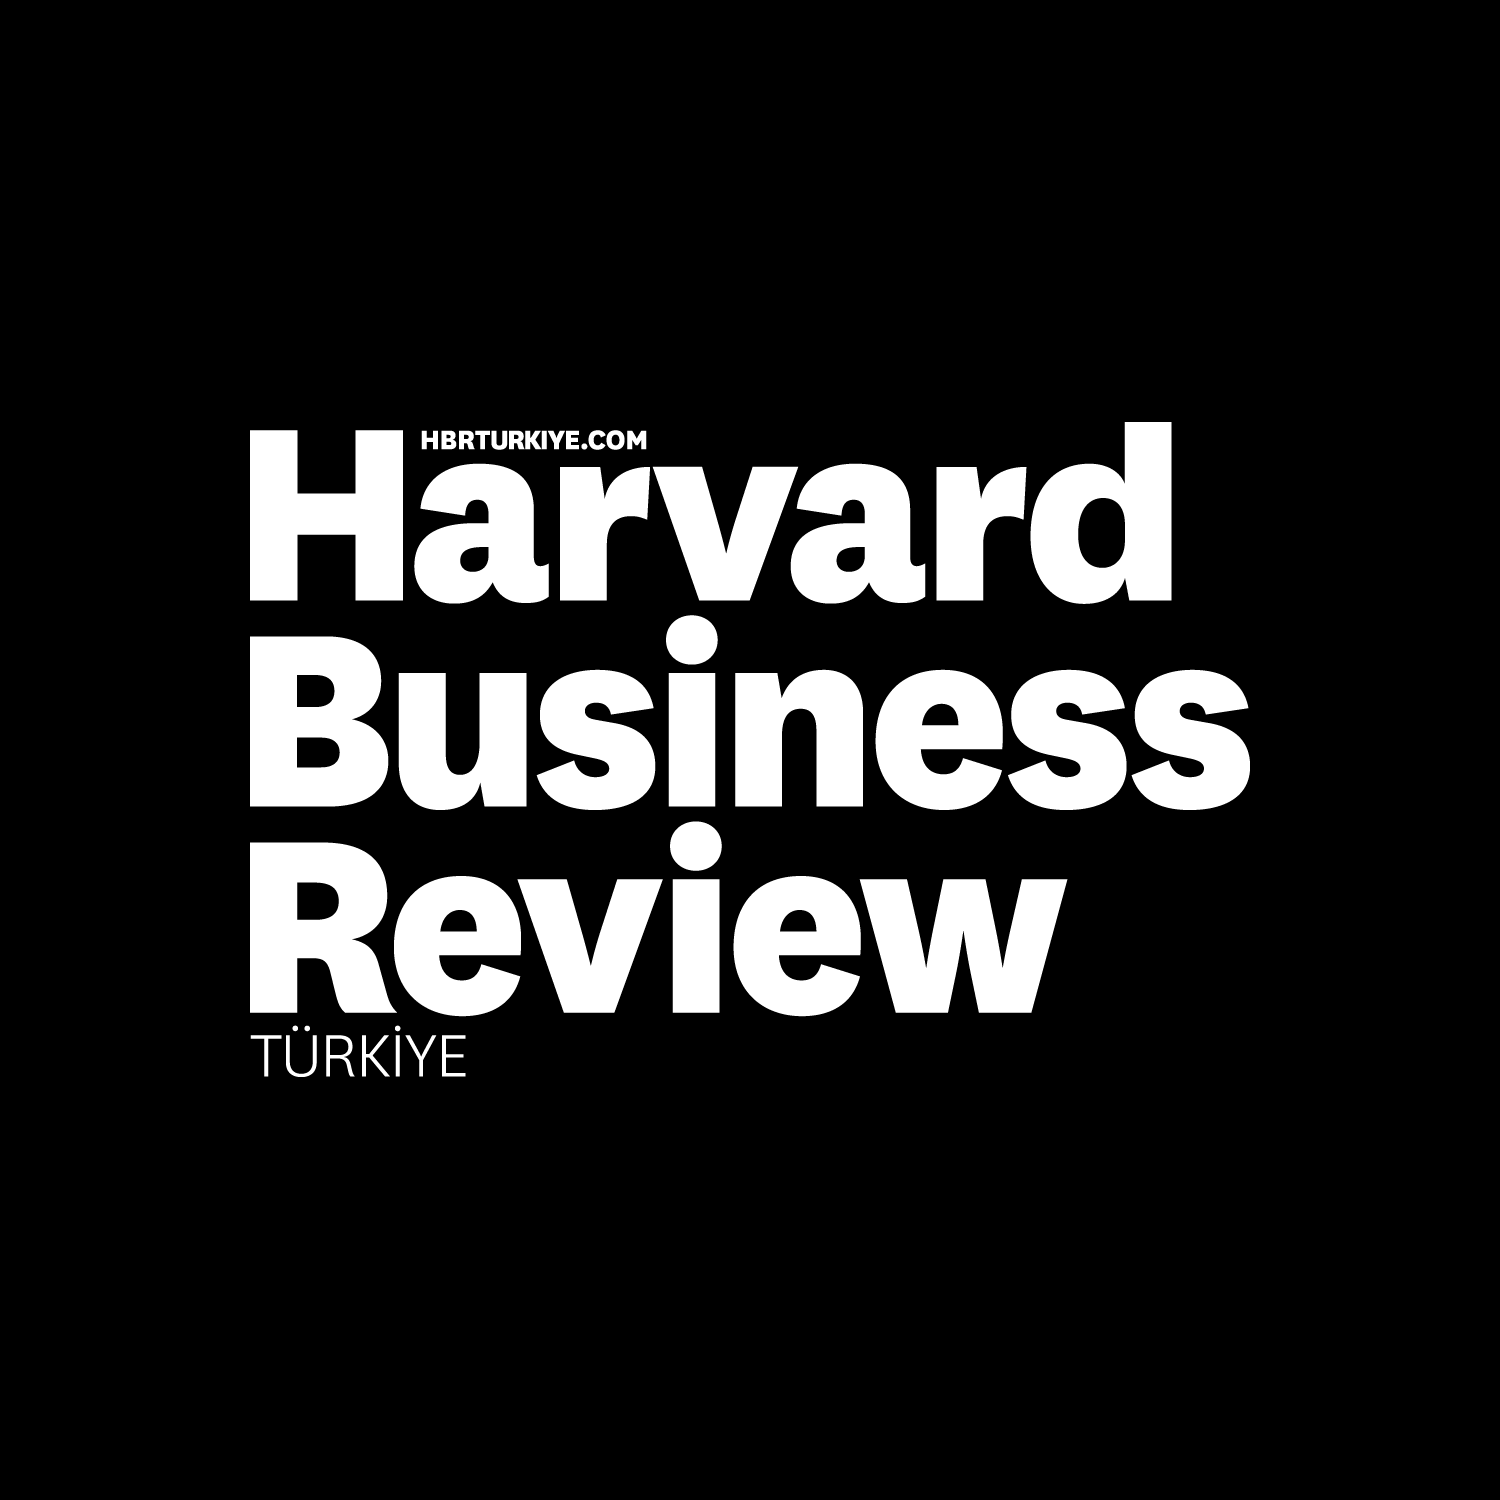 Harvad business review